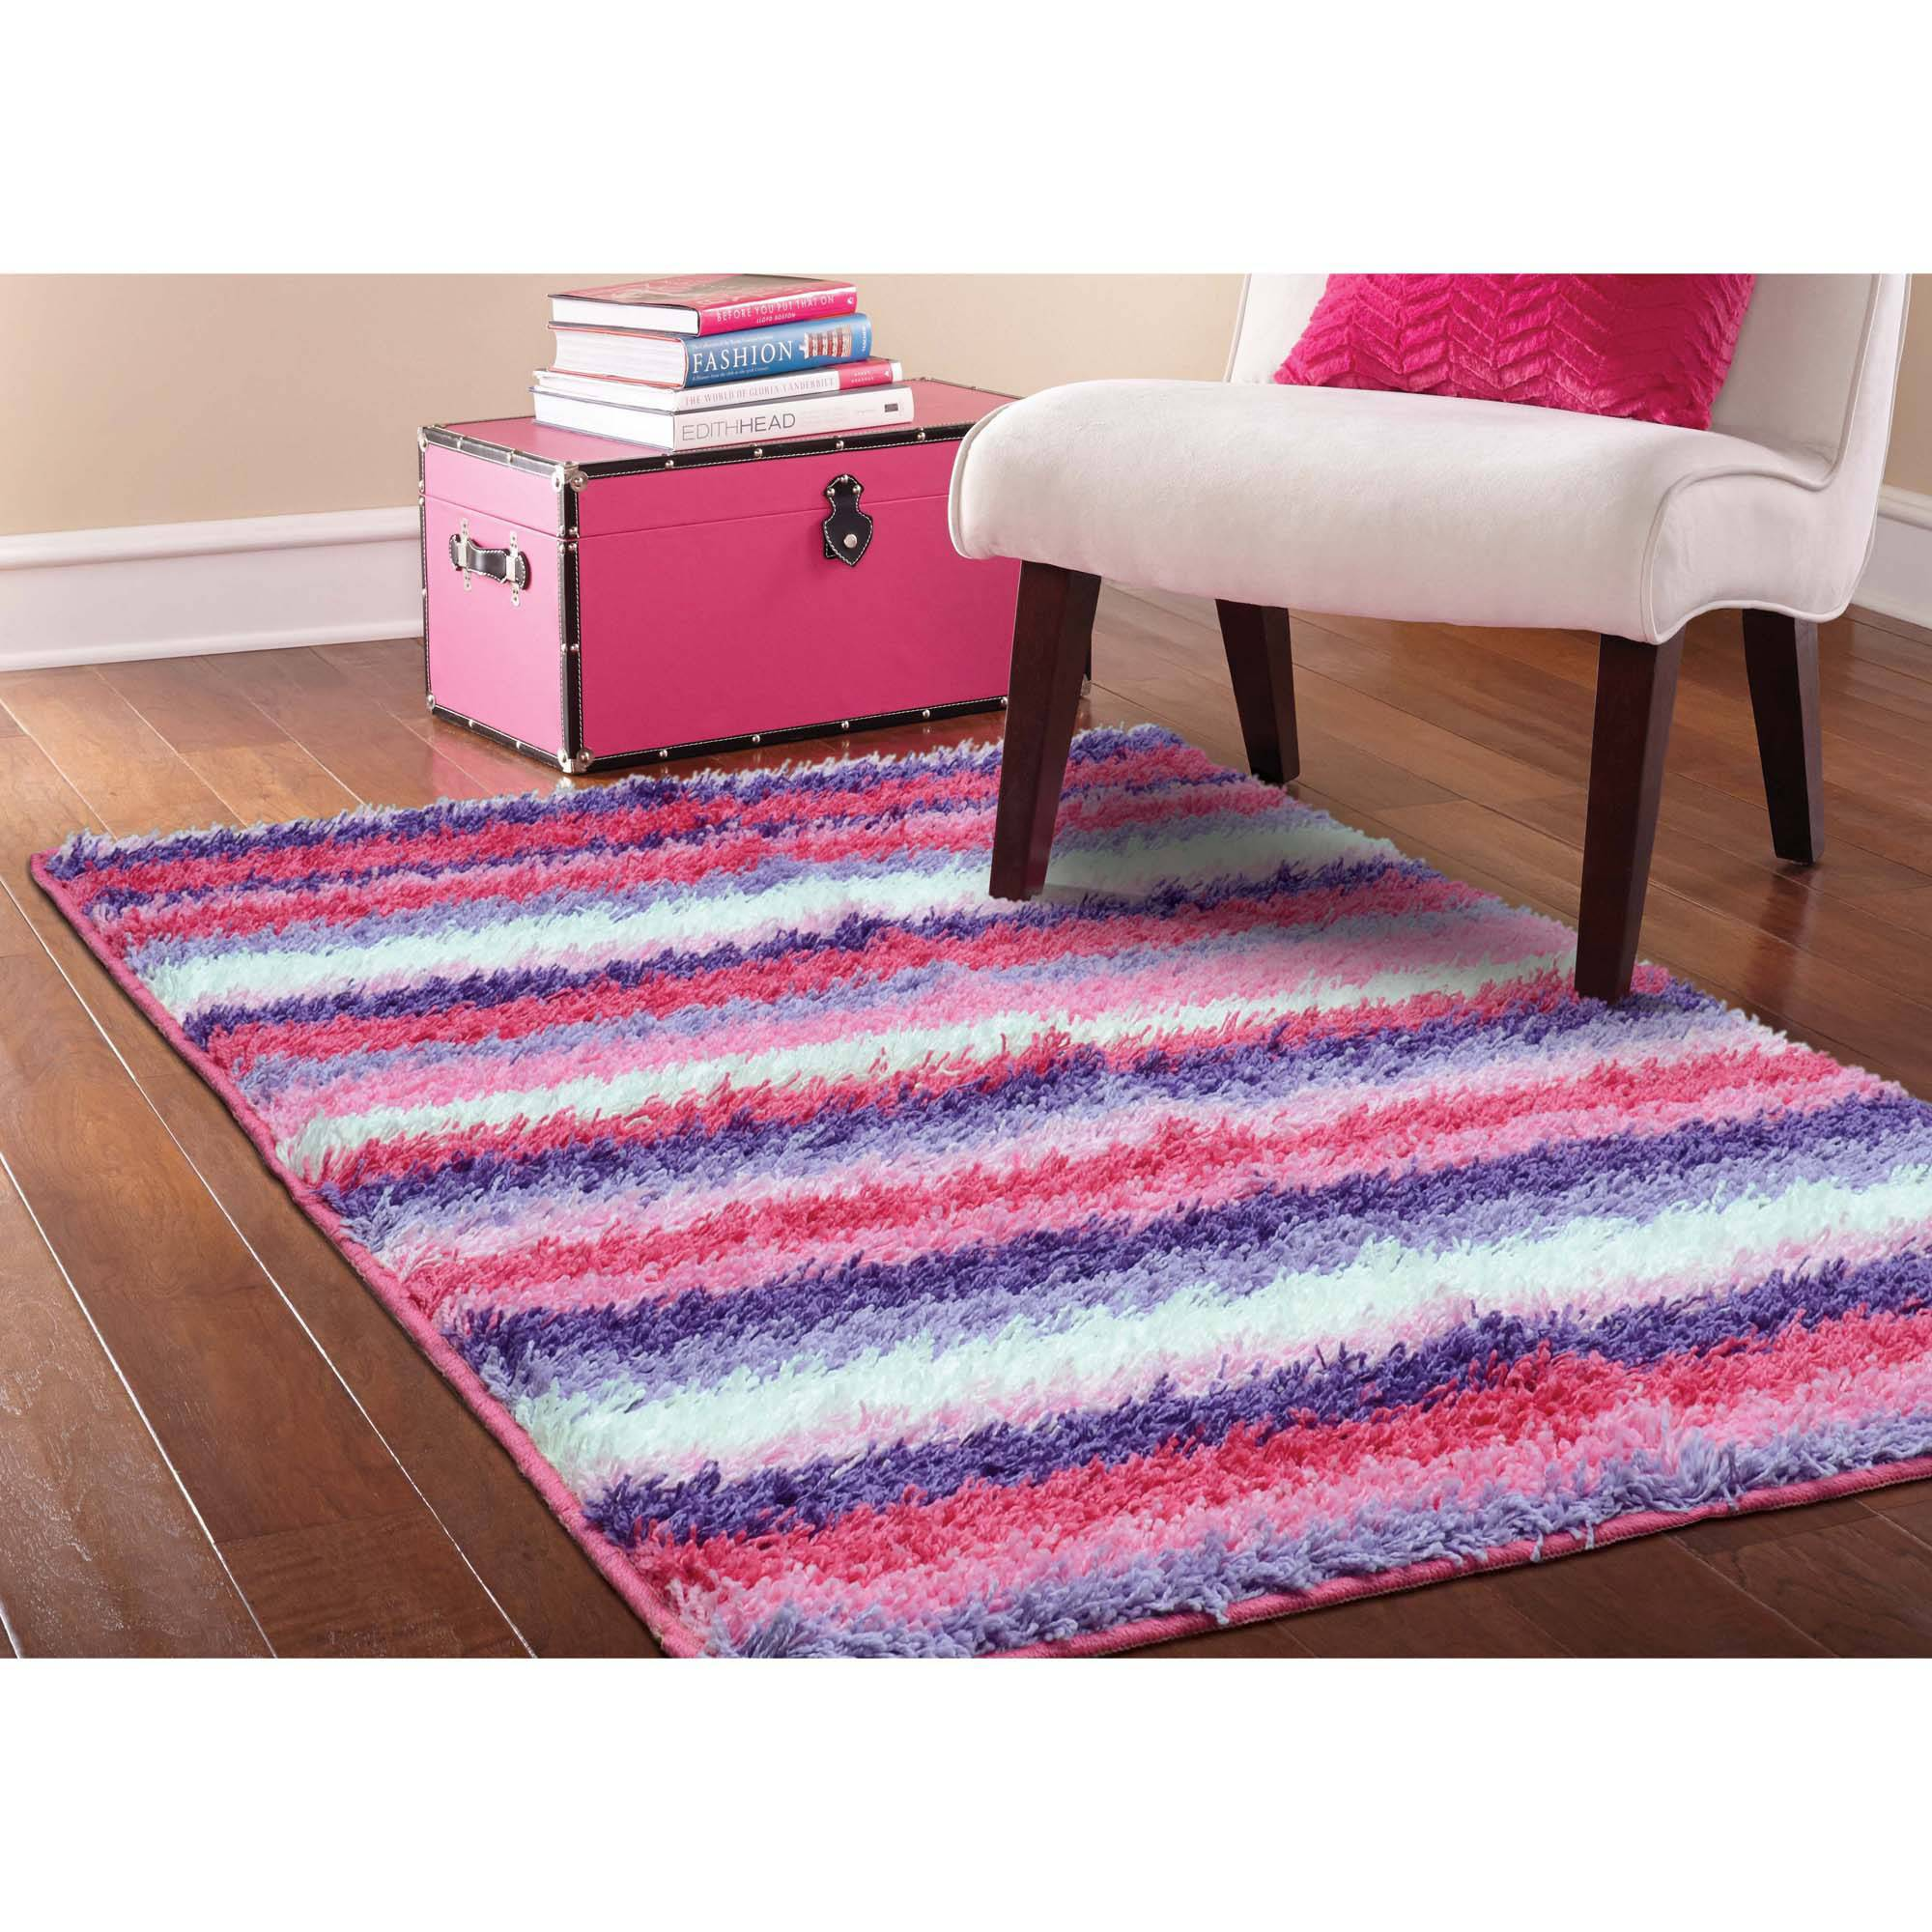 of pink trendy rugs design room rug lovely girls area designs fresh for innovative modern